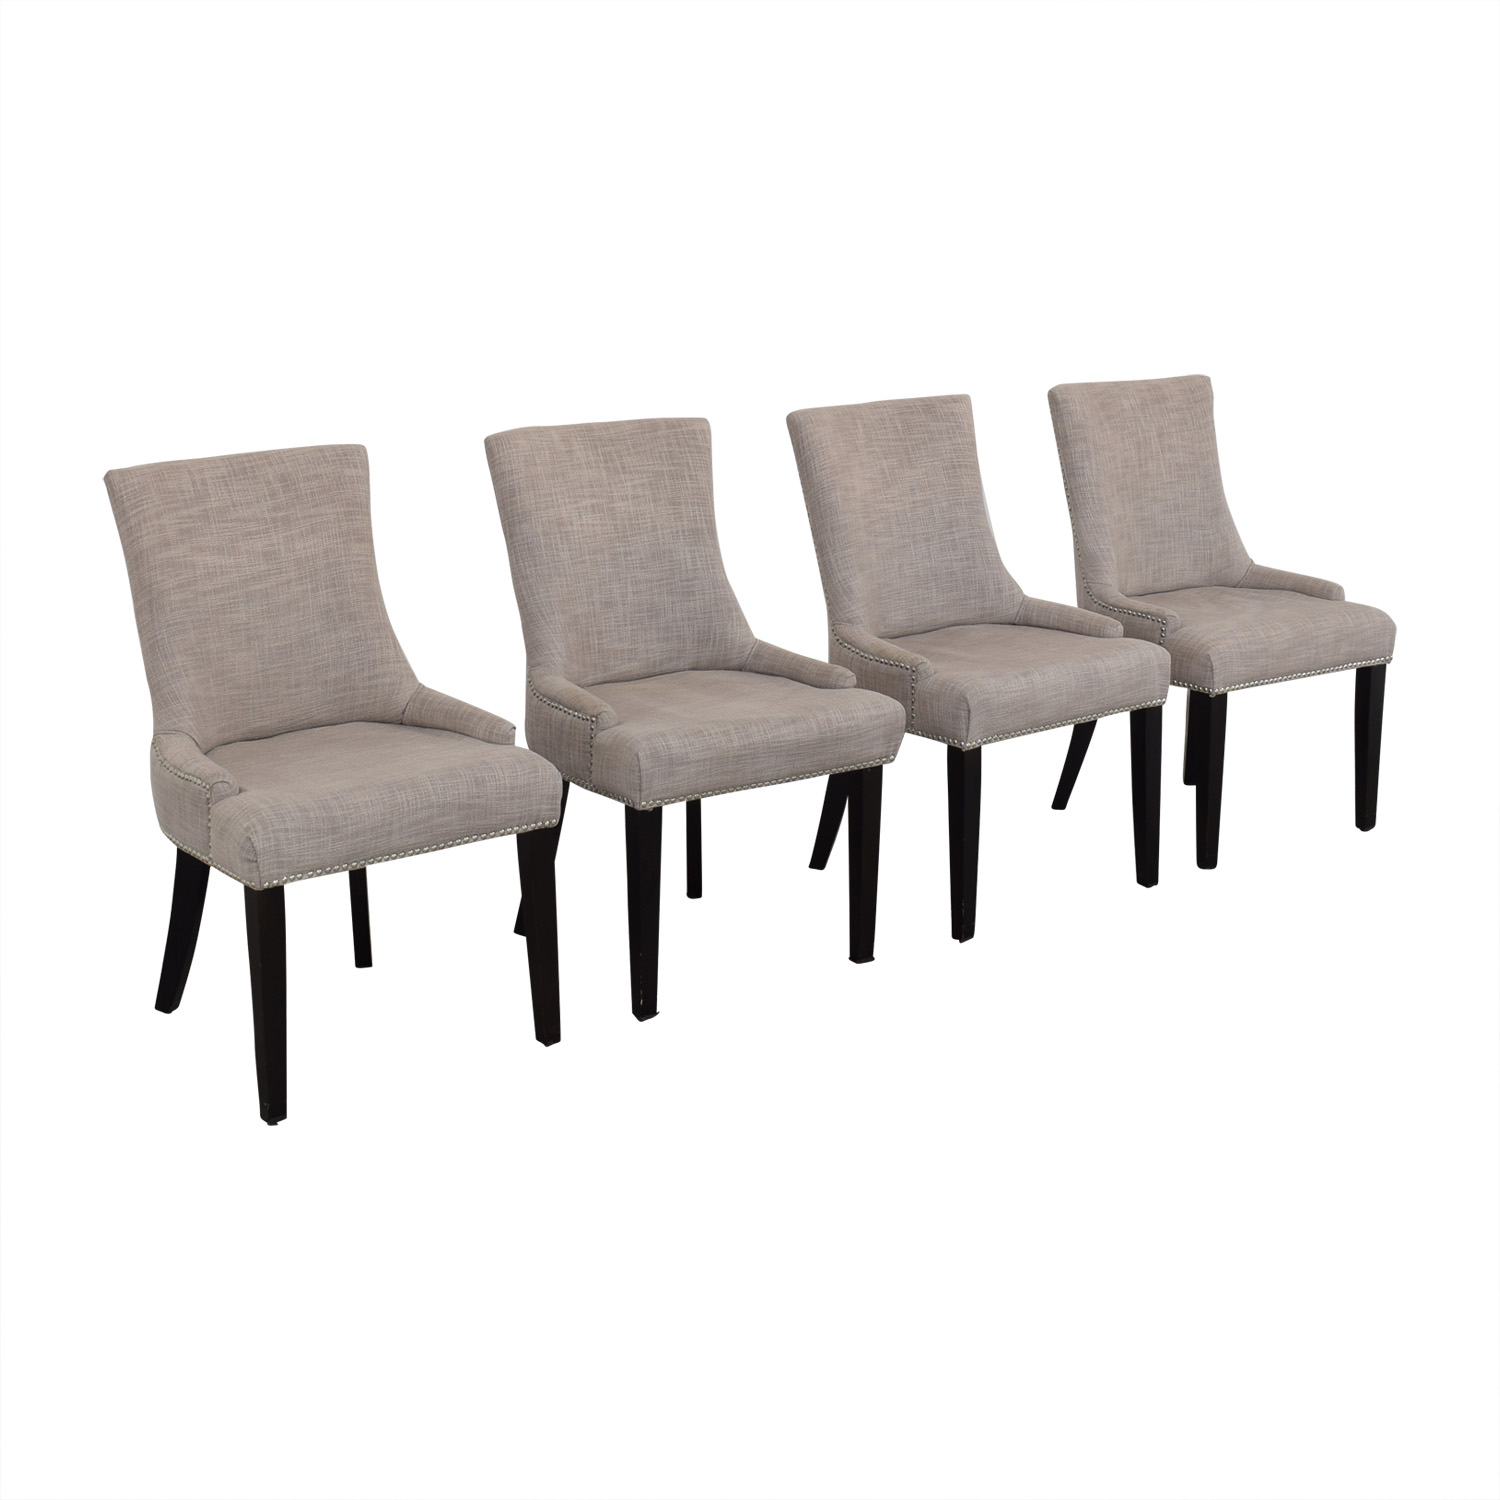 Safavieh Lester Dining Chairs sale